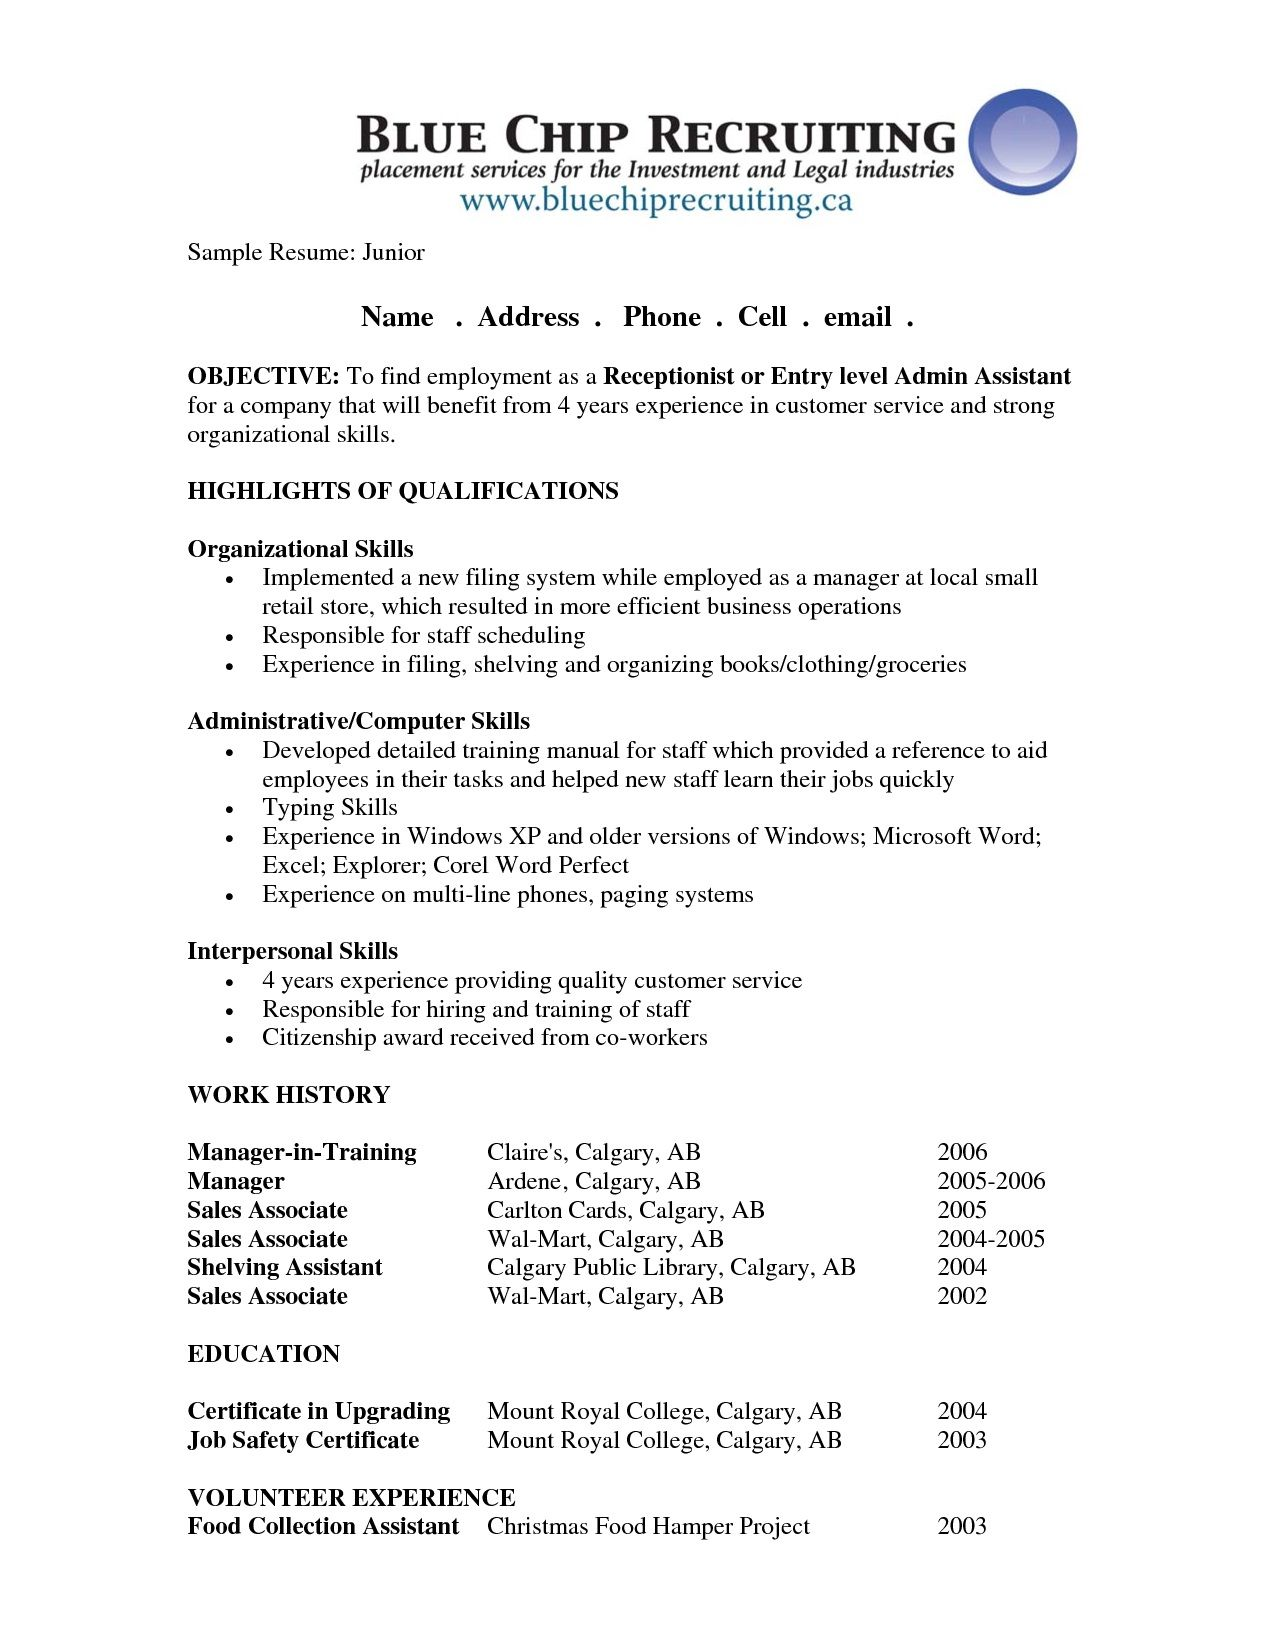 Resume Format For Job getresumetemplateinfo3555resume – Receptionist Resume Template